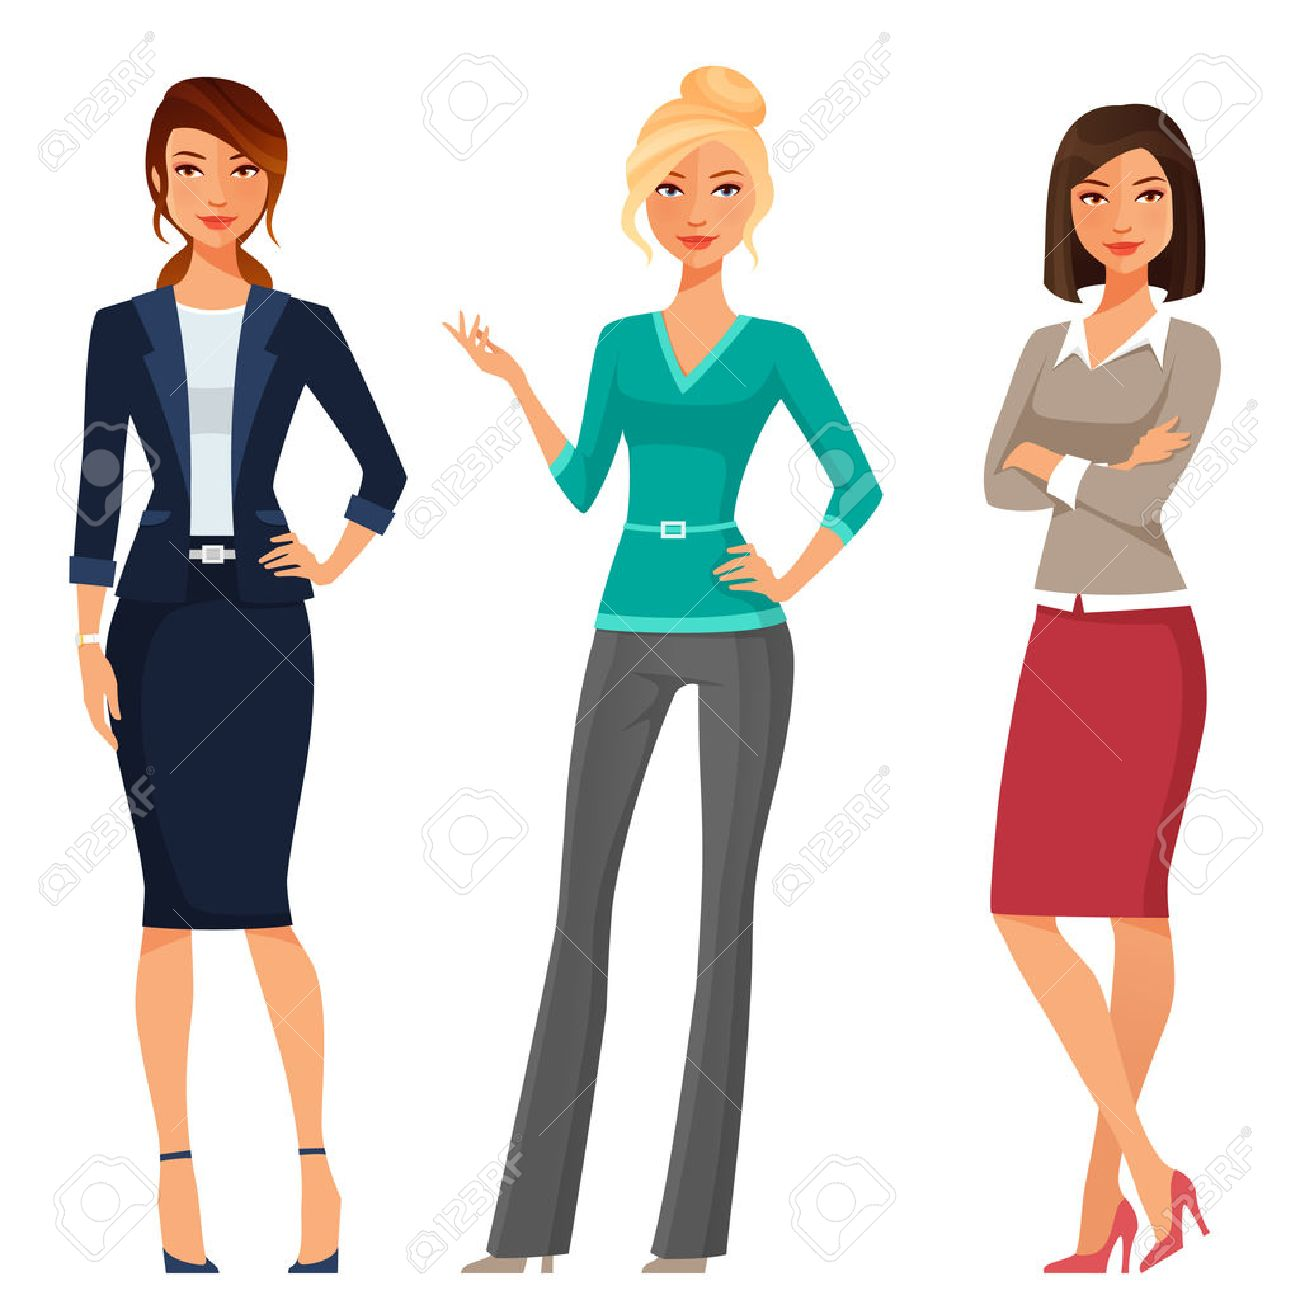 Young women clipart 6 » Clipart Station.